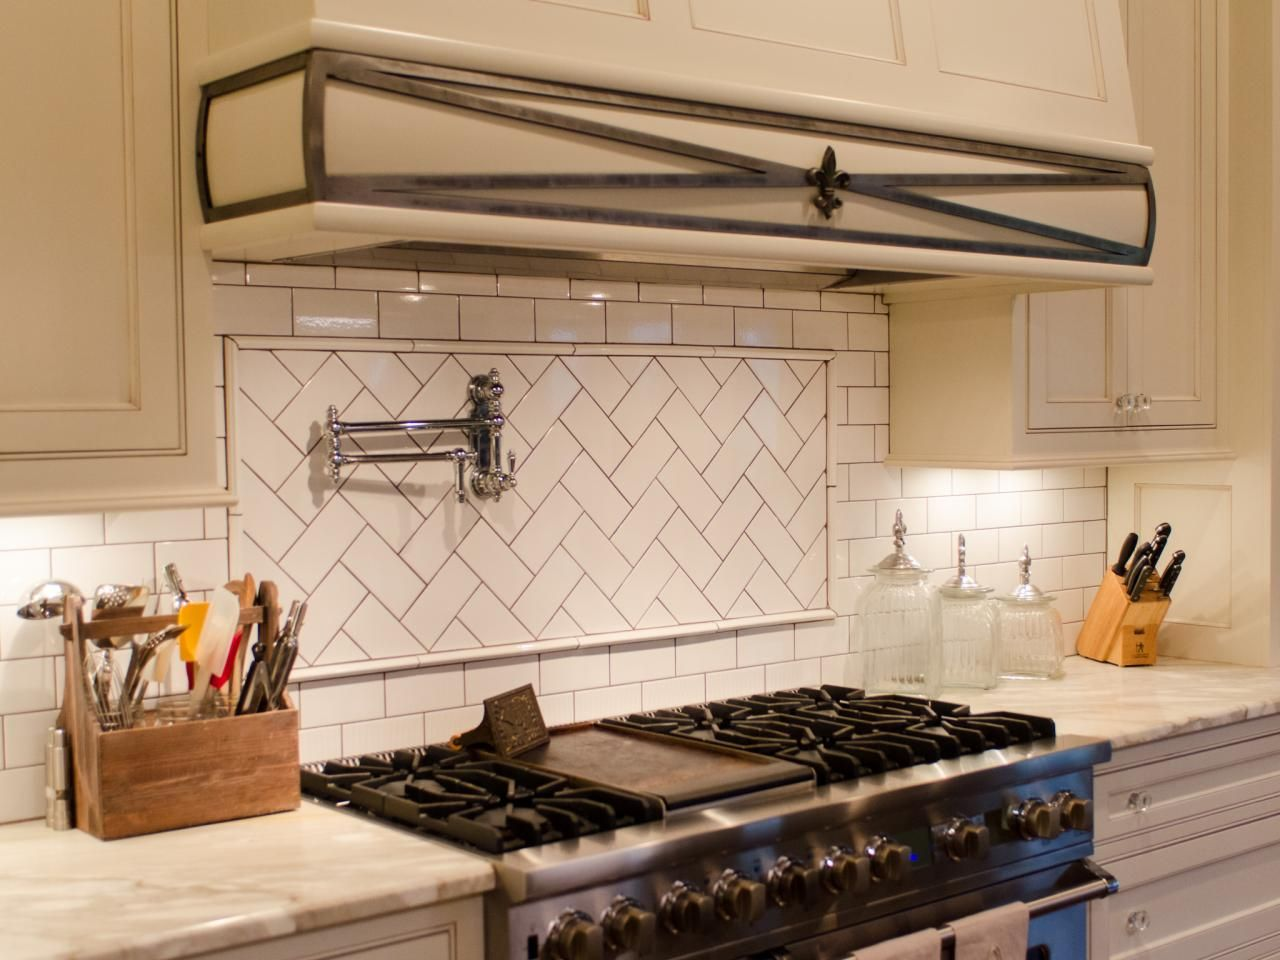 White Subway Tile With Black Grout Saves Money I Want A Pot Filler Faucet So Badly 6 Burners And Brittle Layover For Removable